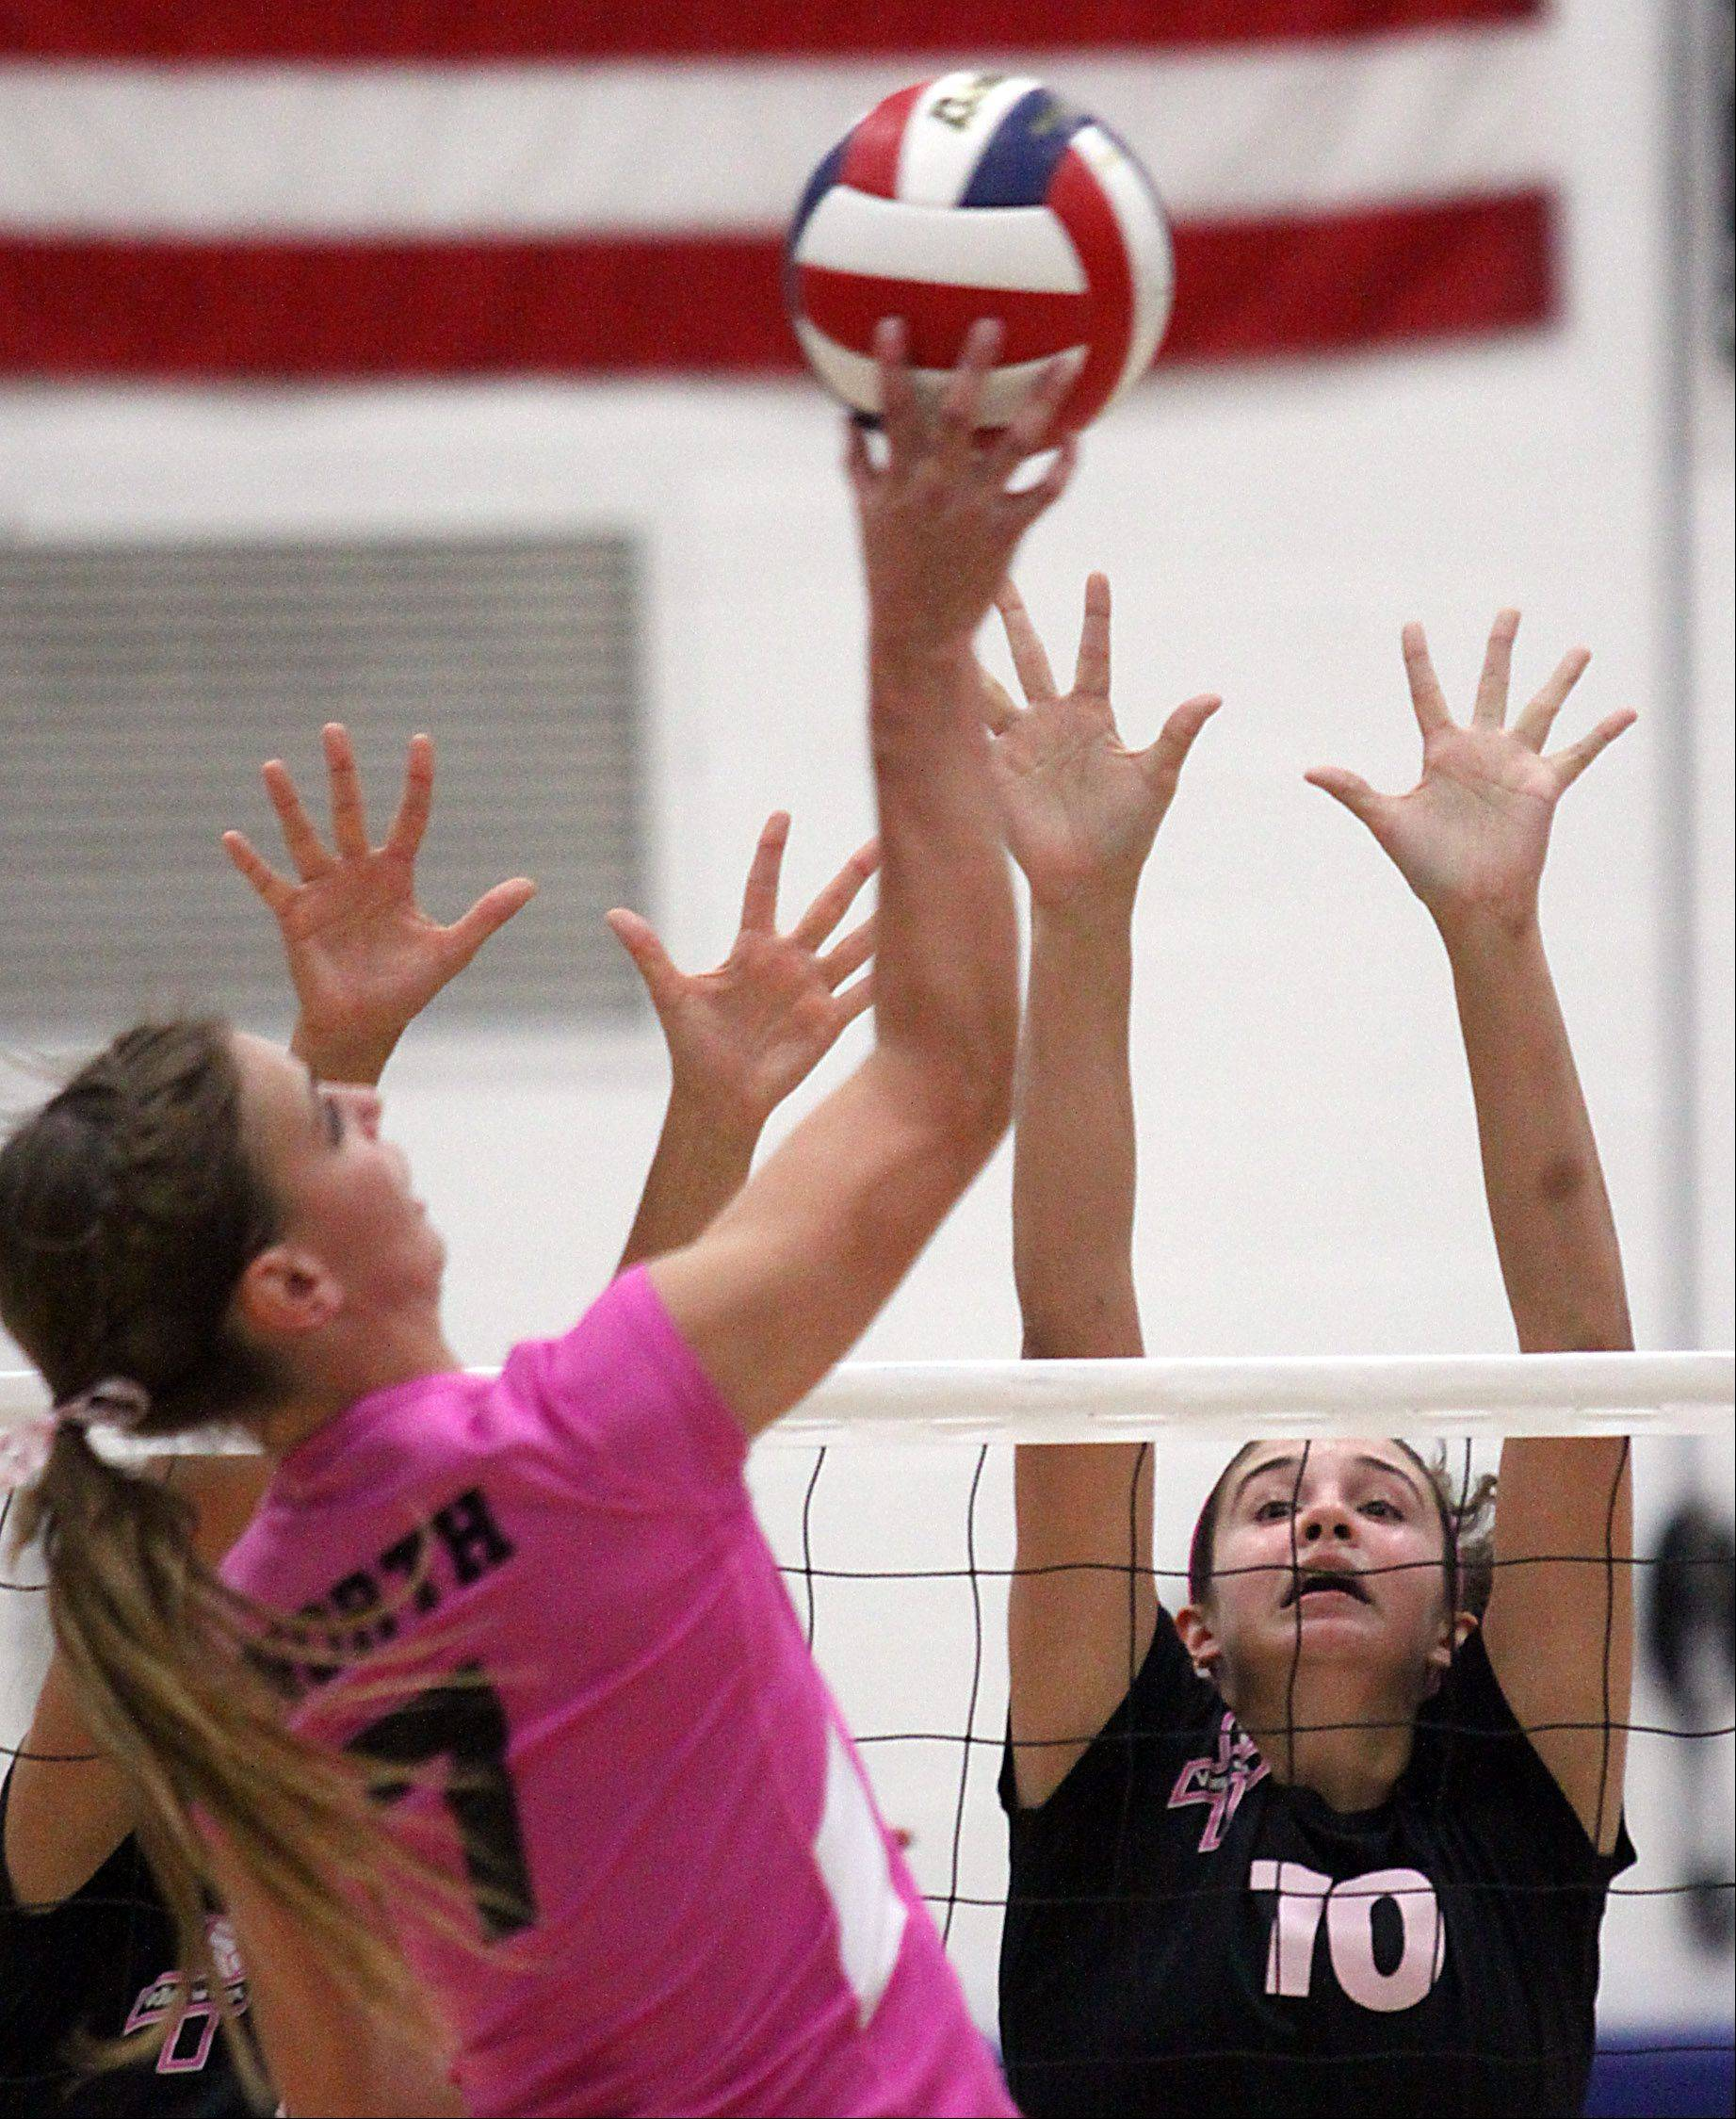 St. Charles North's Taylor Krage, left, tries to get the ball past St. Charles East's Mikaela Mosquera during a varsity volleyball game at St. Charles North on Tuesday evening.